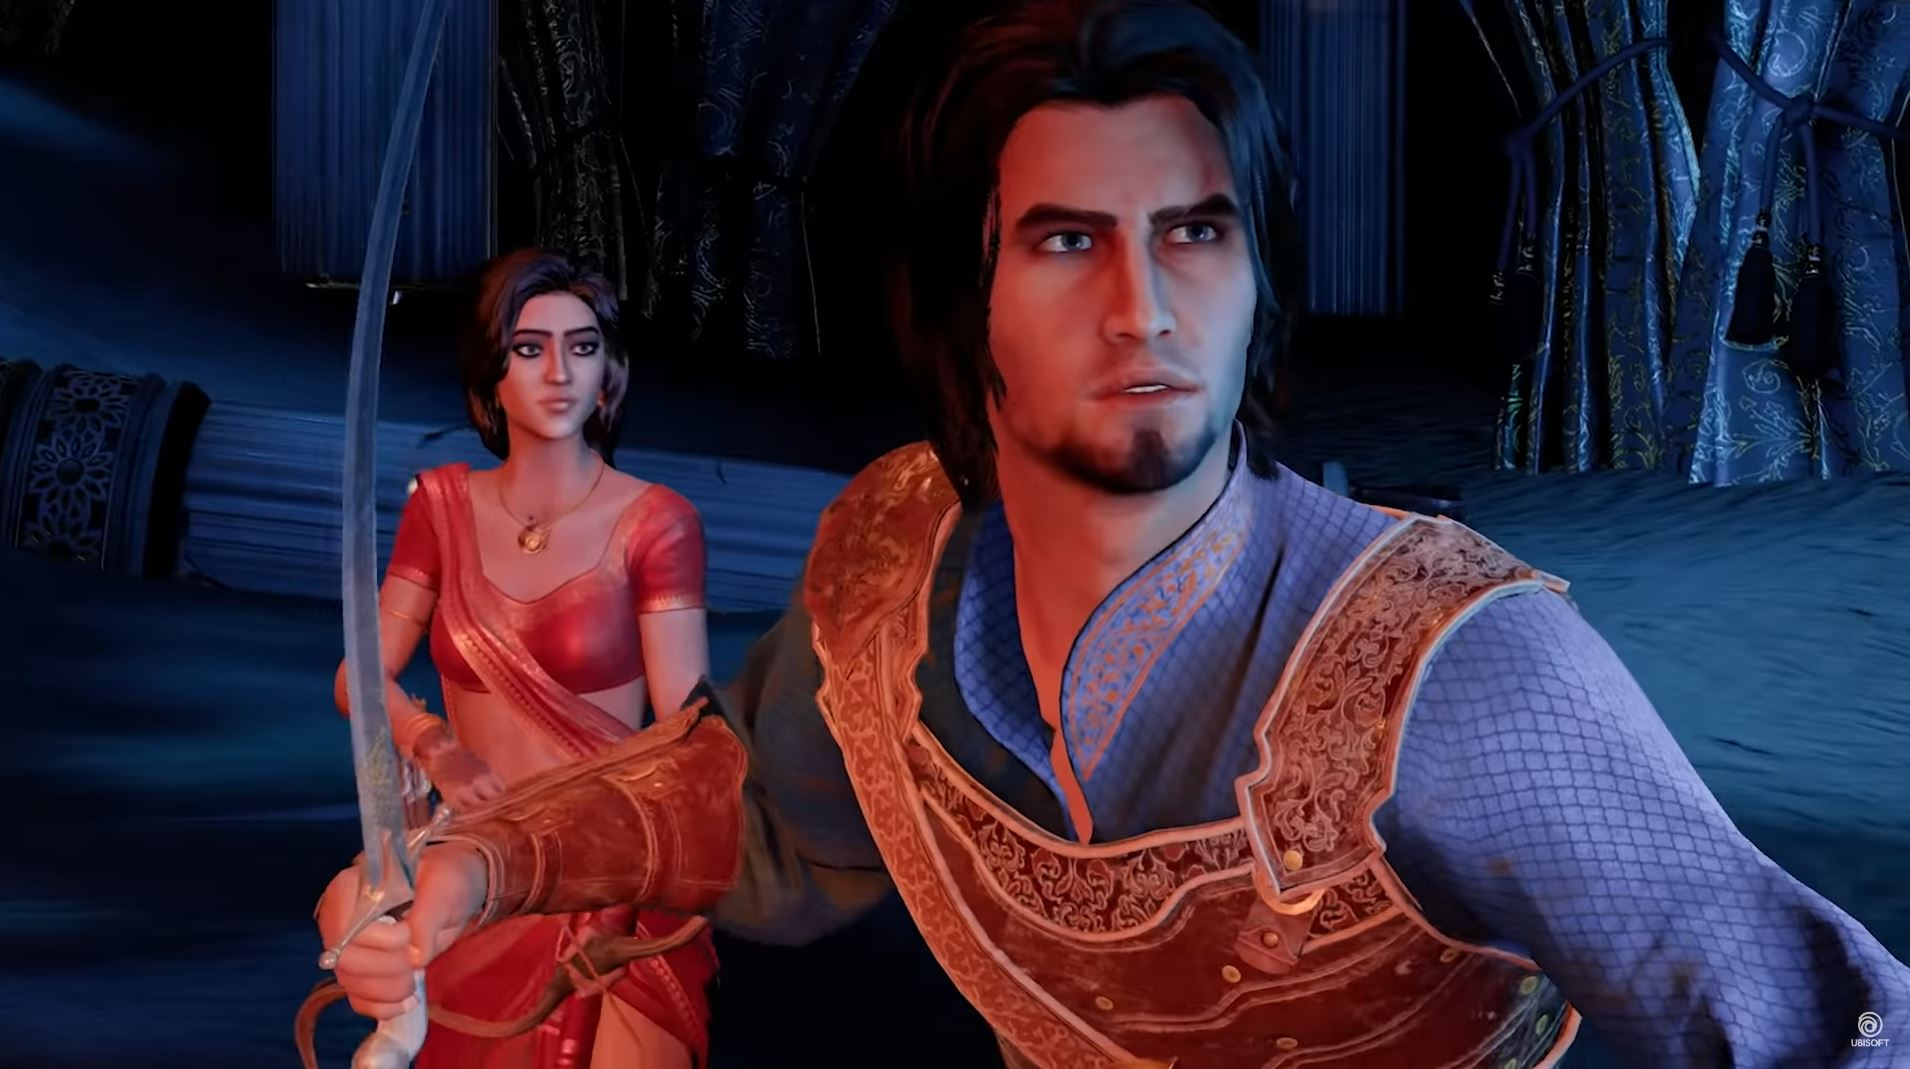 Ubisoft confirms Prince of Persia: The Sands of Time remake for early 2021 - SlashGear